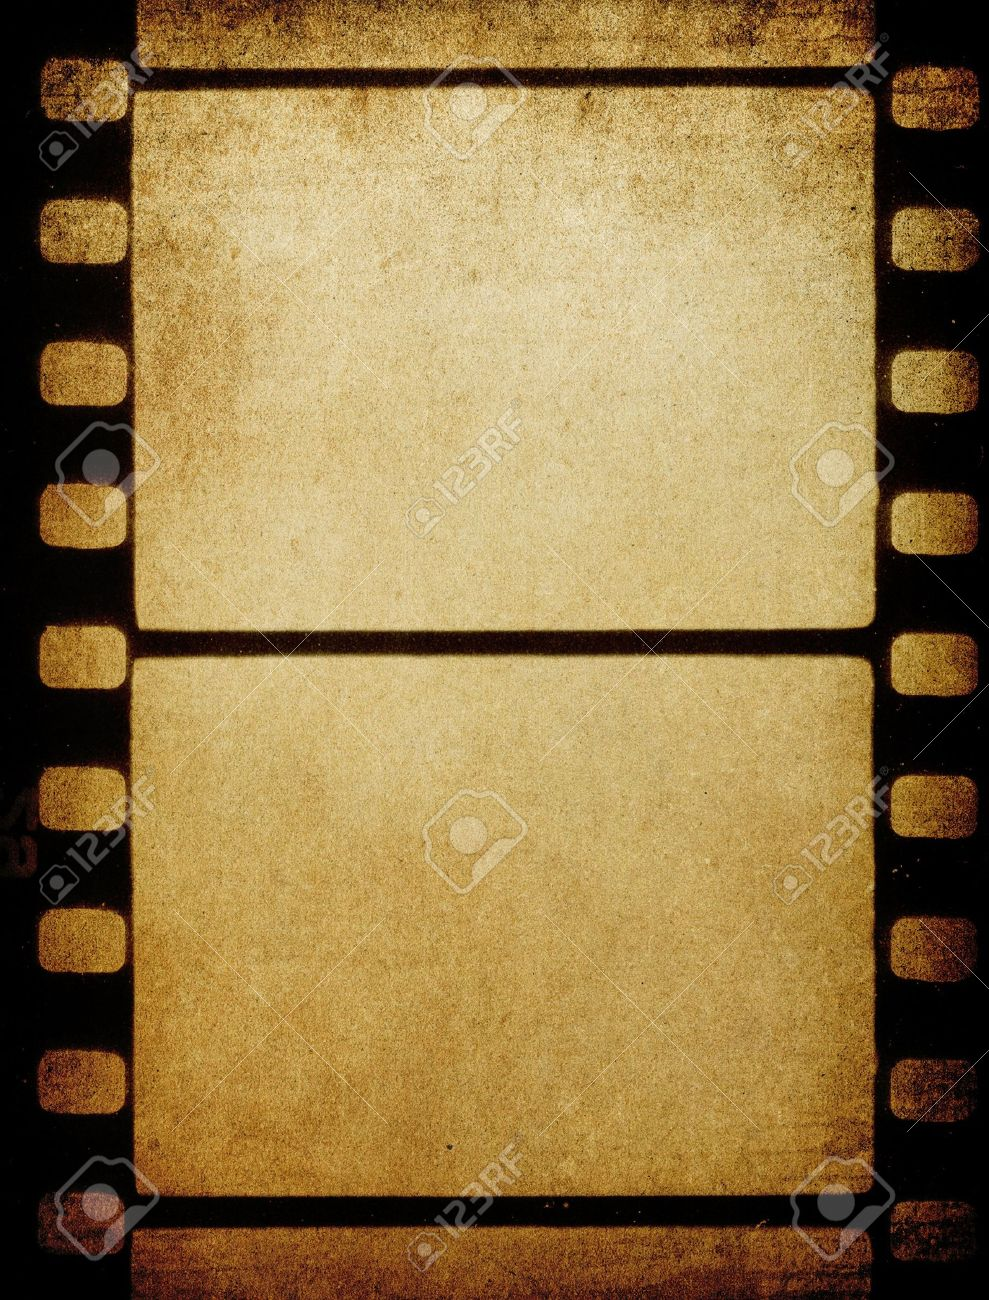 Grunge Vintage 35 Mm Film Background With Space For Text. Stock ...